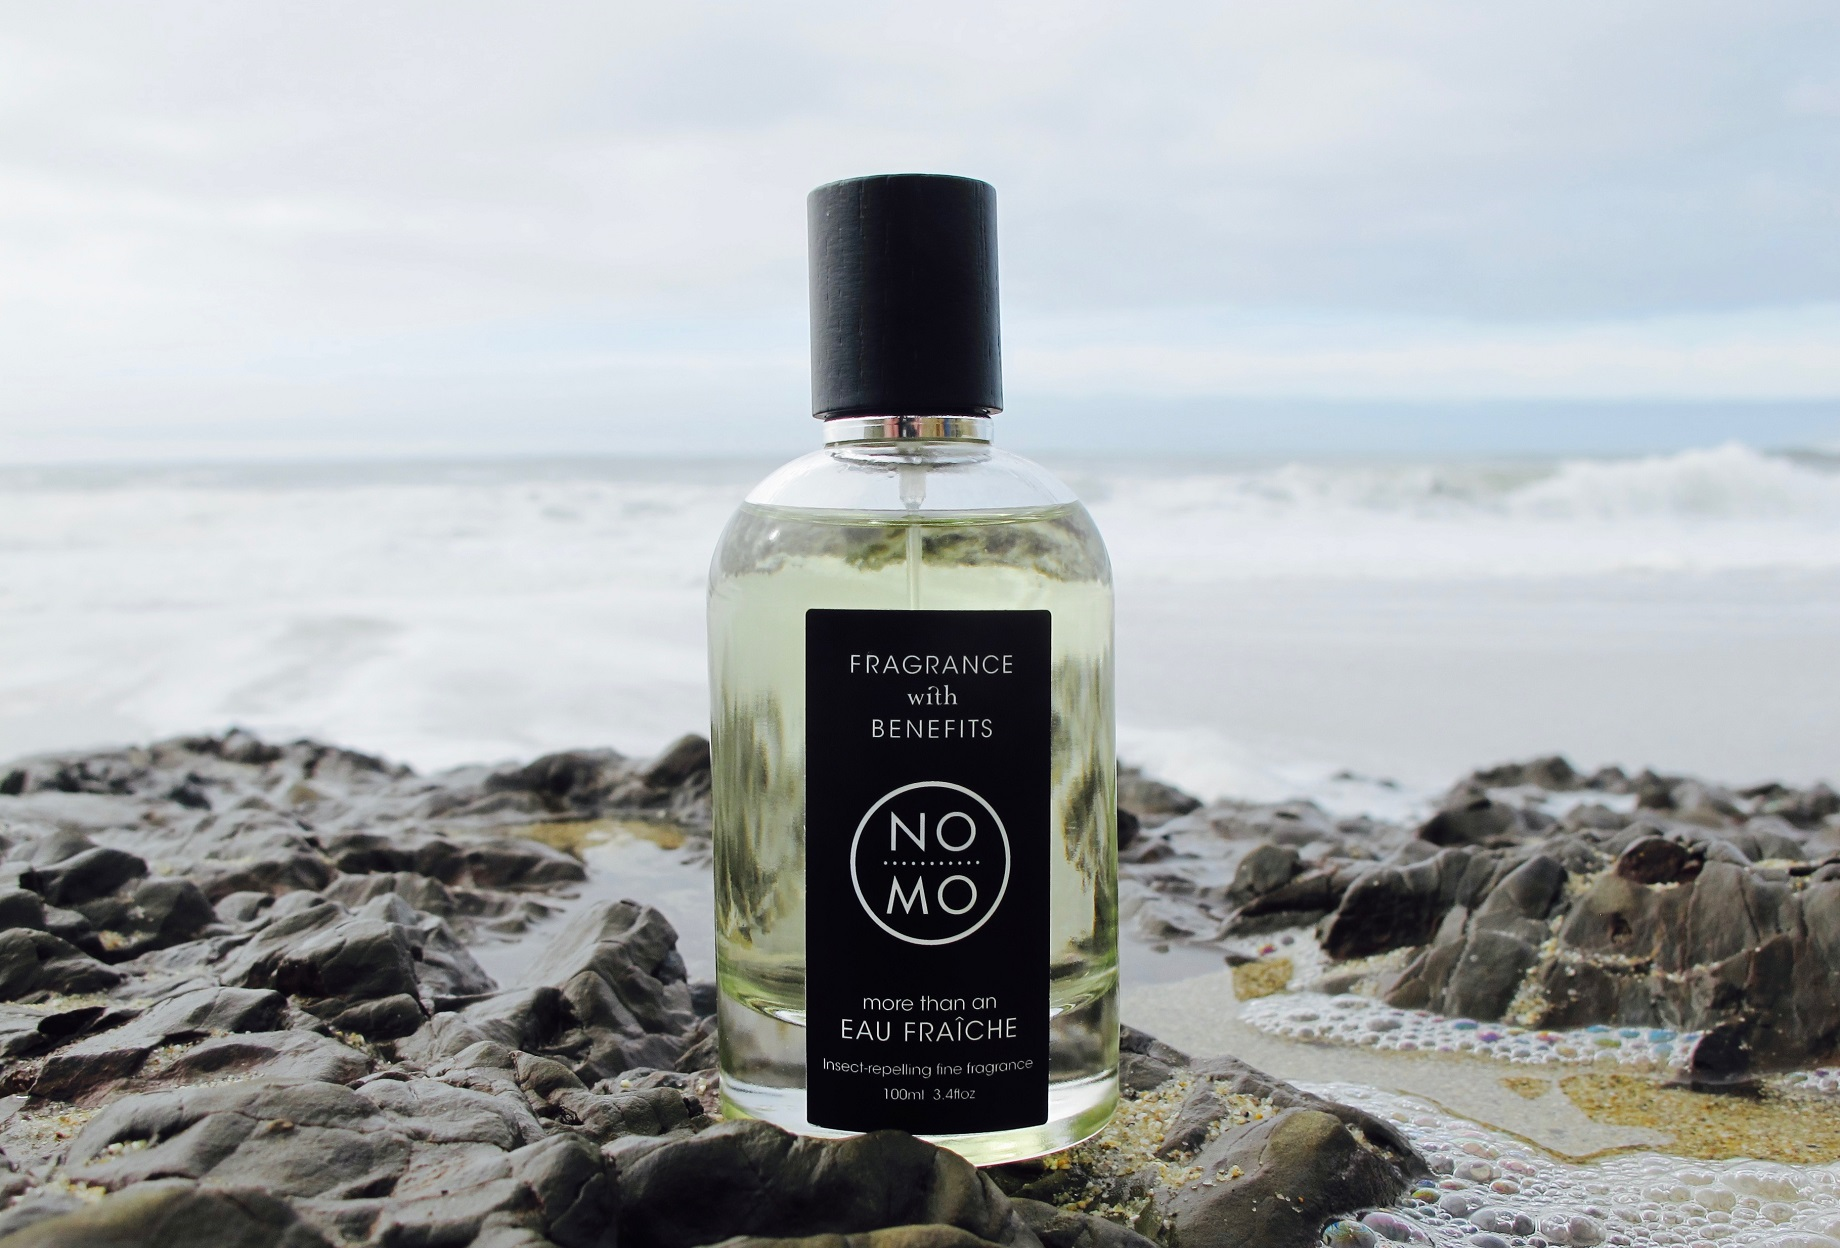 Jetsetting off to somewhere warm this Holiday season? We've got the fragrance for you